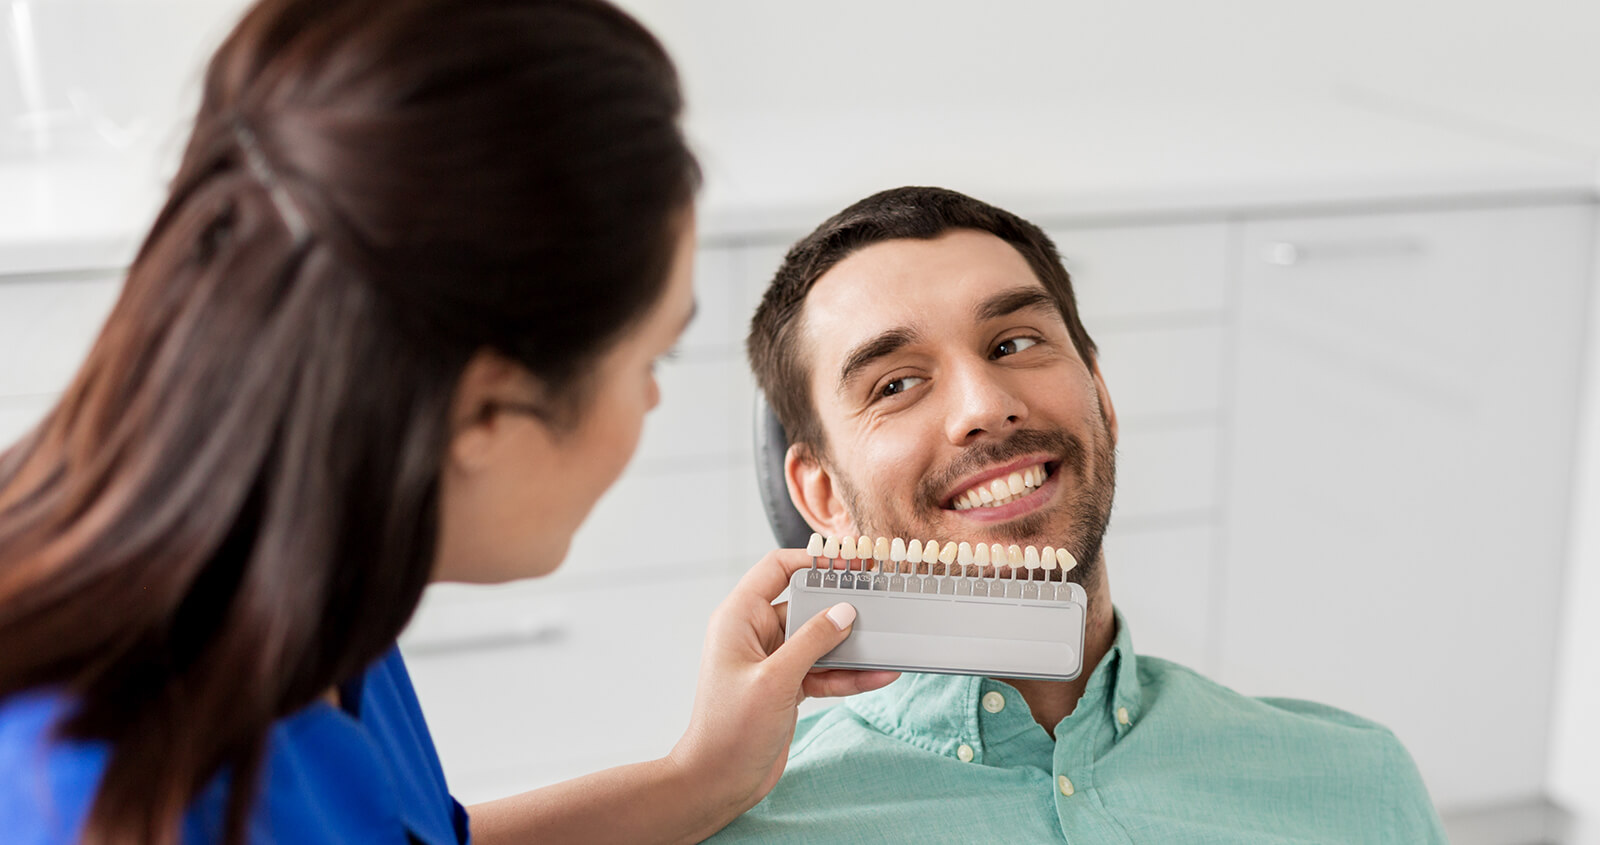 Porcelain Dental Veneers at Dr. Troy Schmedding of Family Dentistry in Walnut Creek CA Area